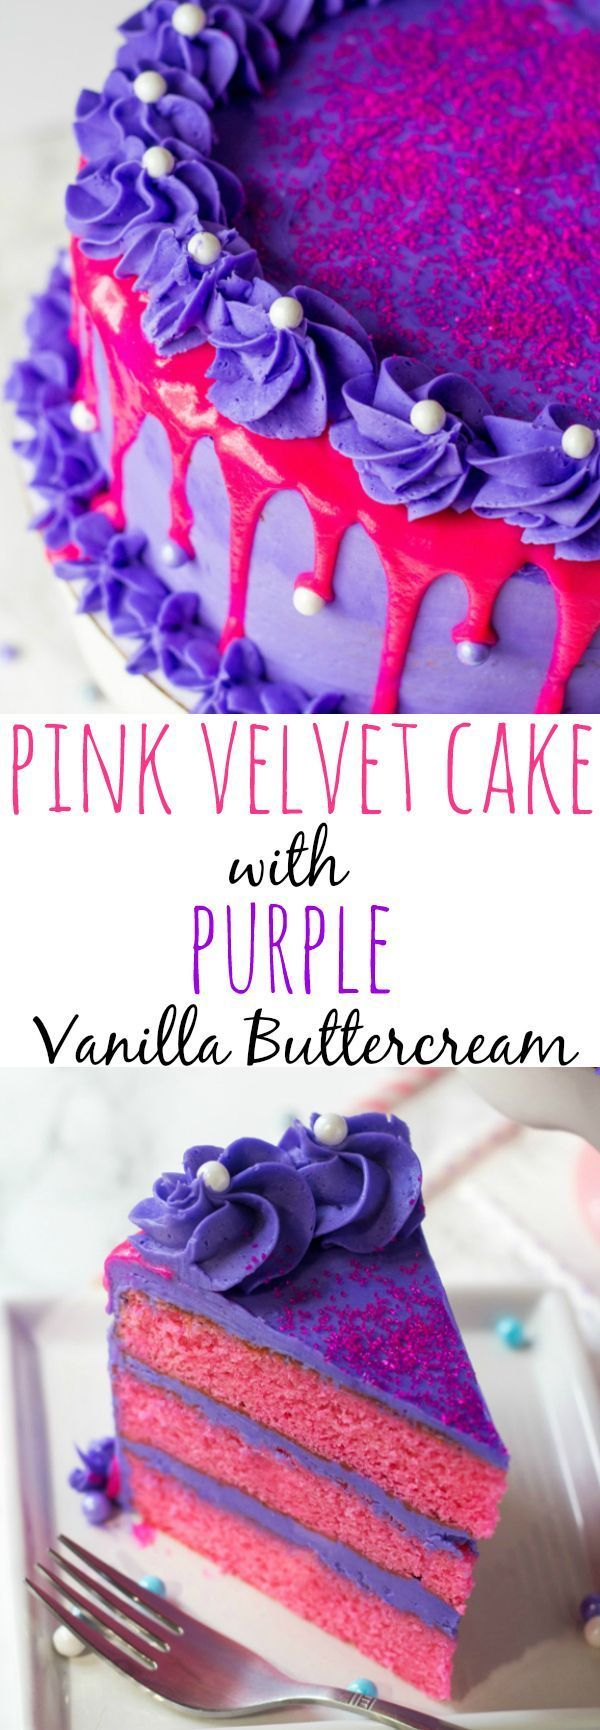 """""""This Pink Velvet Cake with Purple Vanilla Buttercream is the perfect cake for a birthday celebration. This cake will perfectly match an Abby Cadabby themed birthday party."""